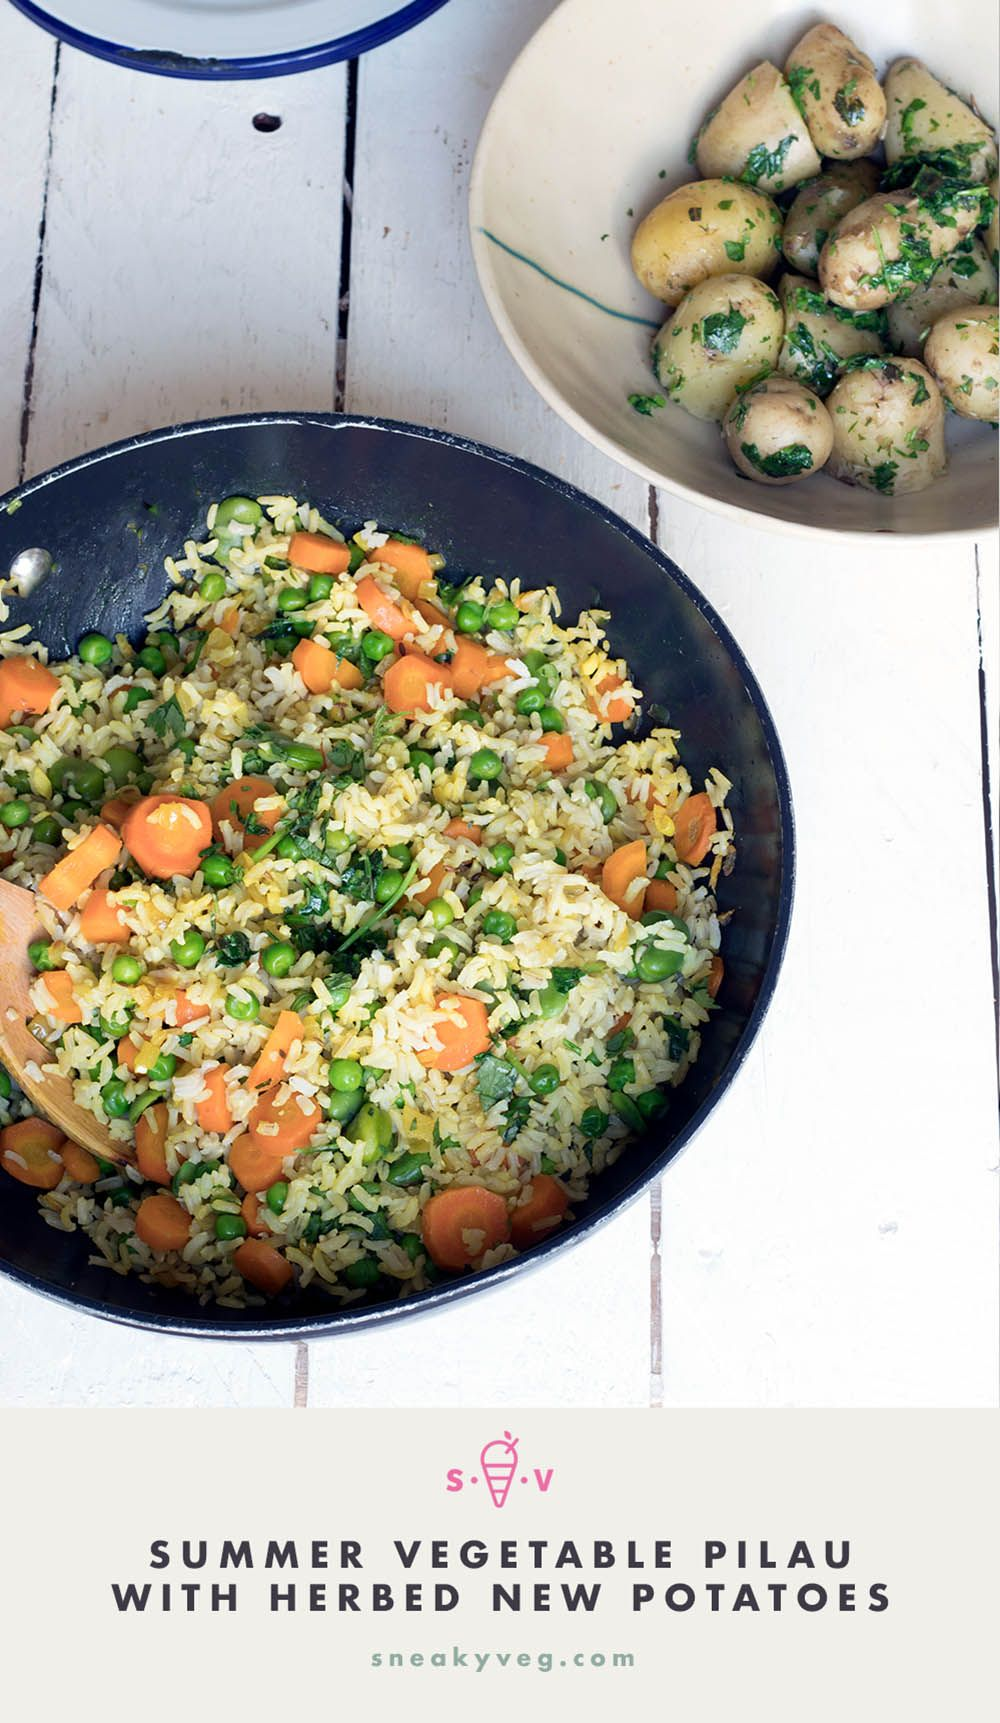 Summer Vegetable Pilau